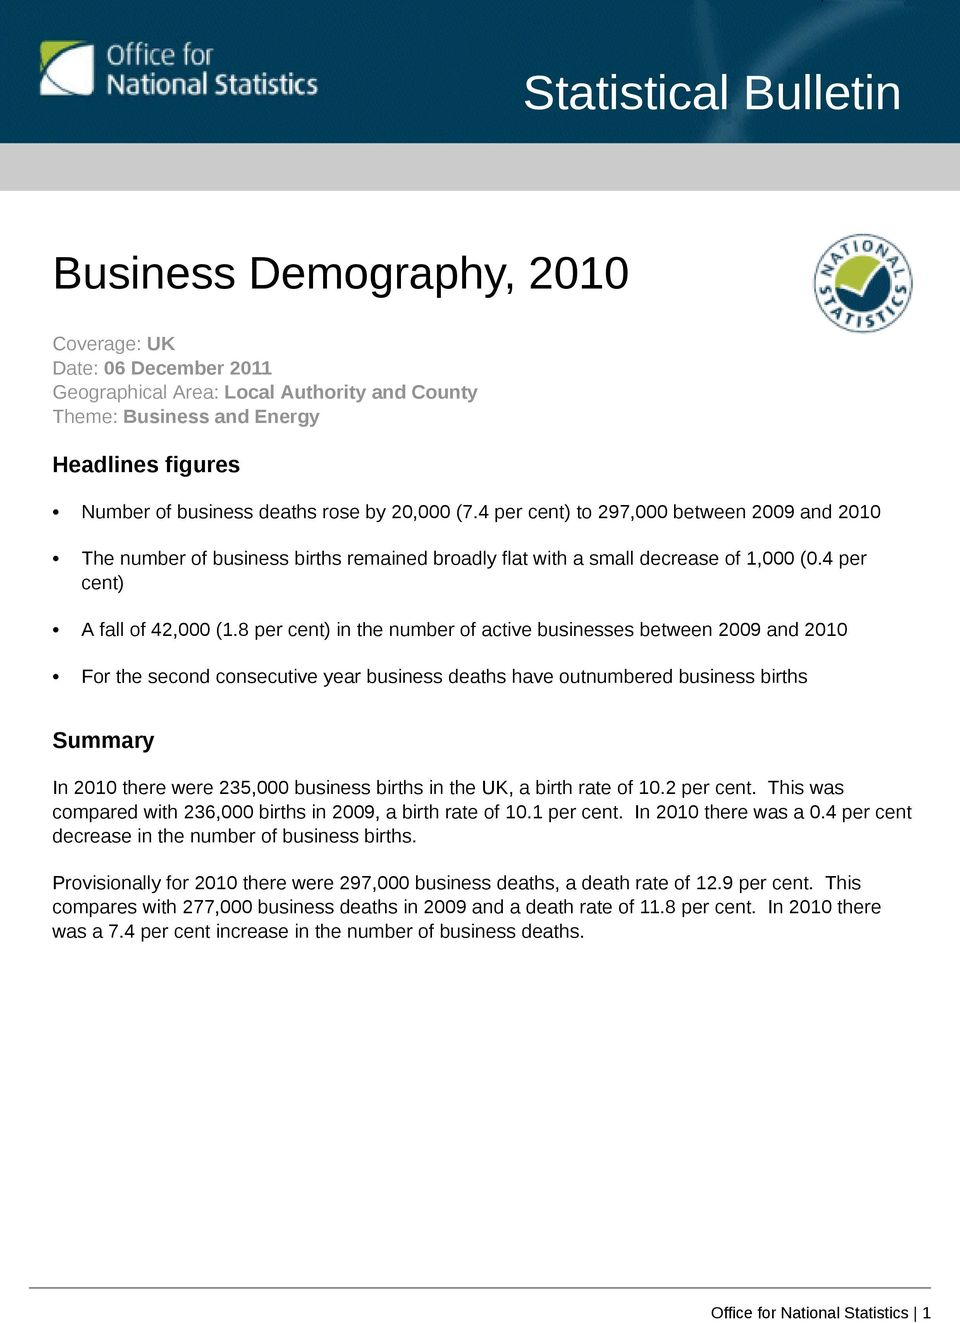 8 per in the number of active businesses between 2009 and 2010 For the second consecutive year business deaths have outnumbered business births Summary In 2010 there were 235,000 business births in